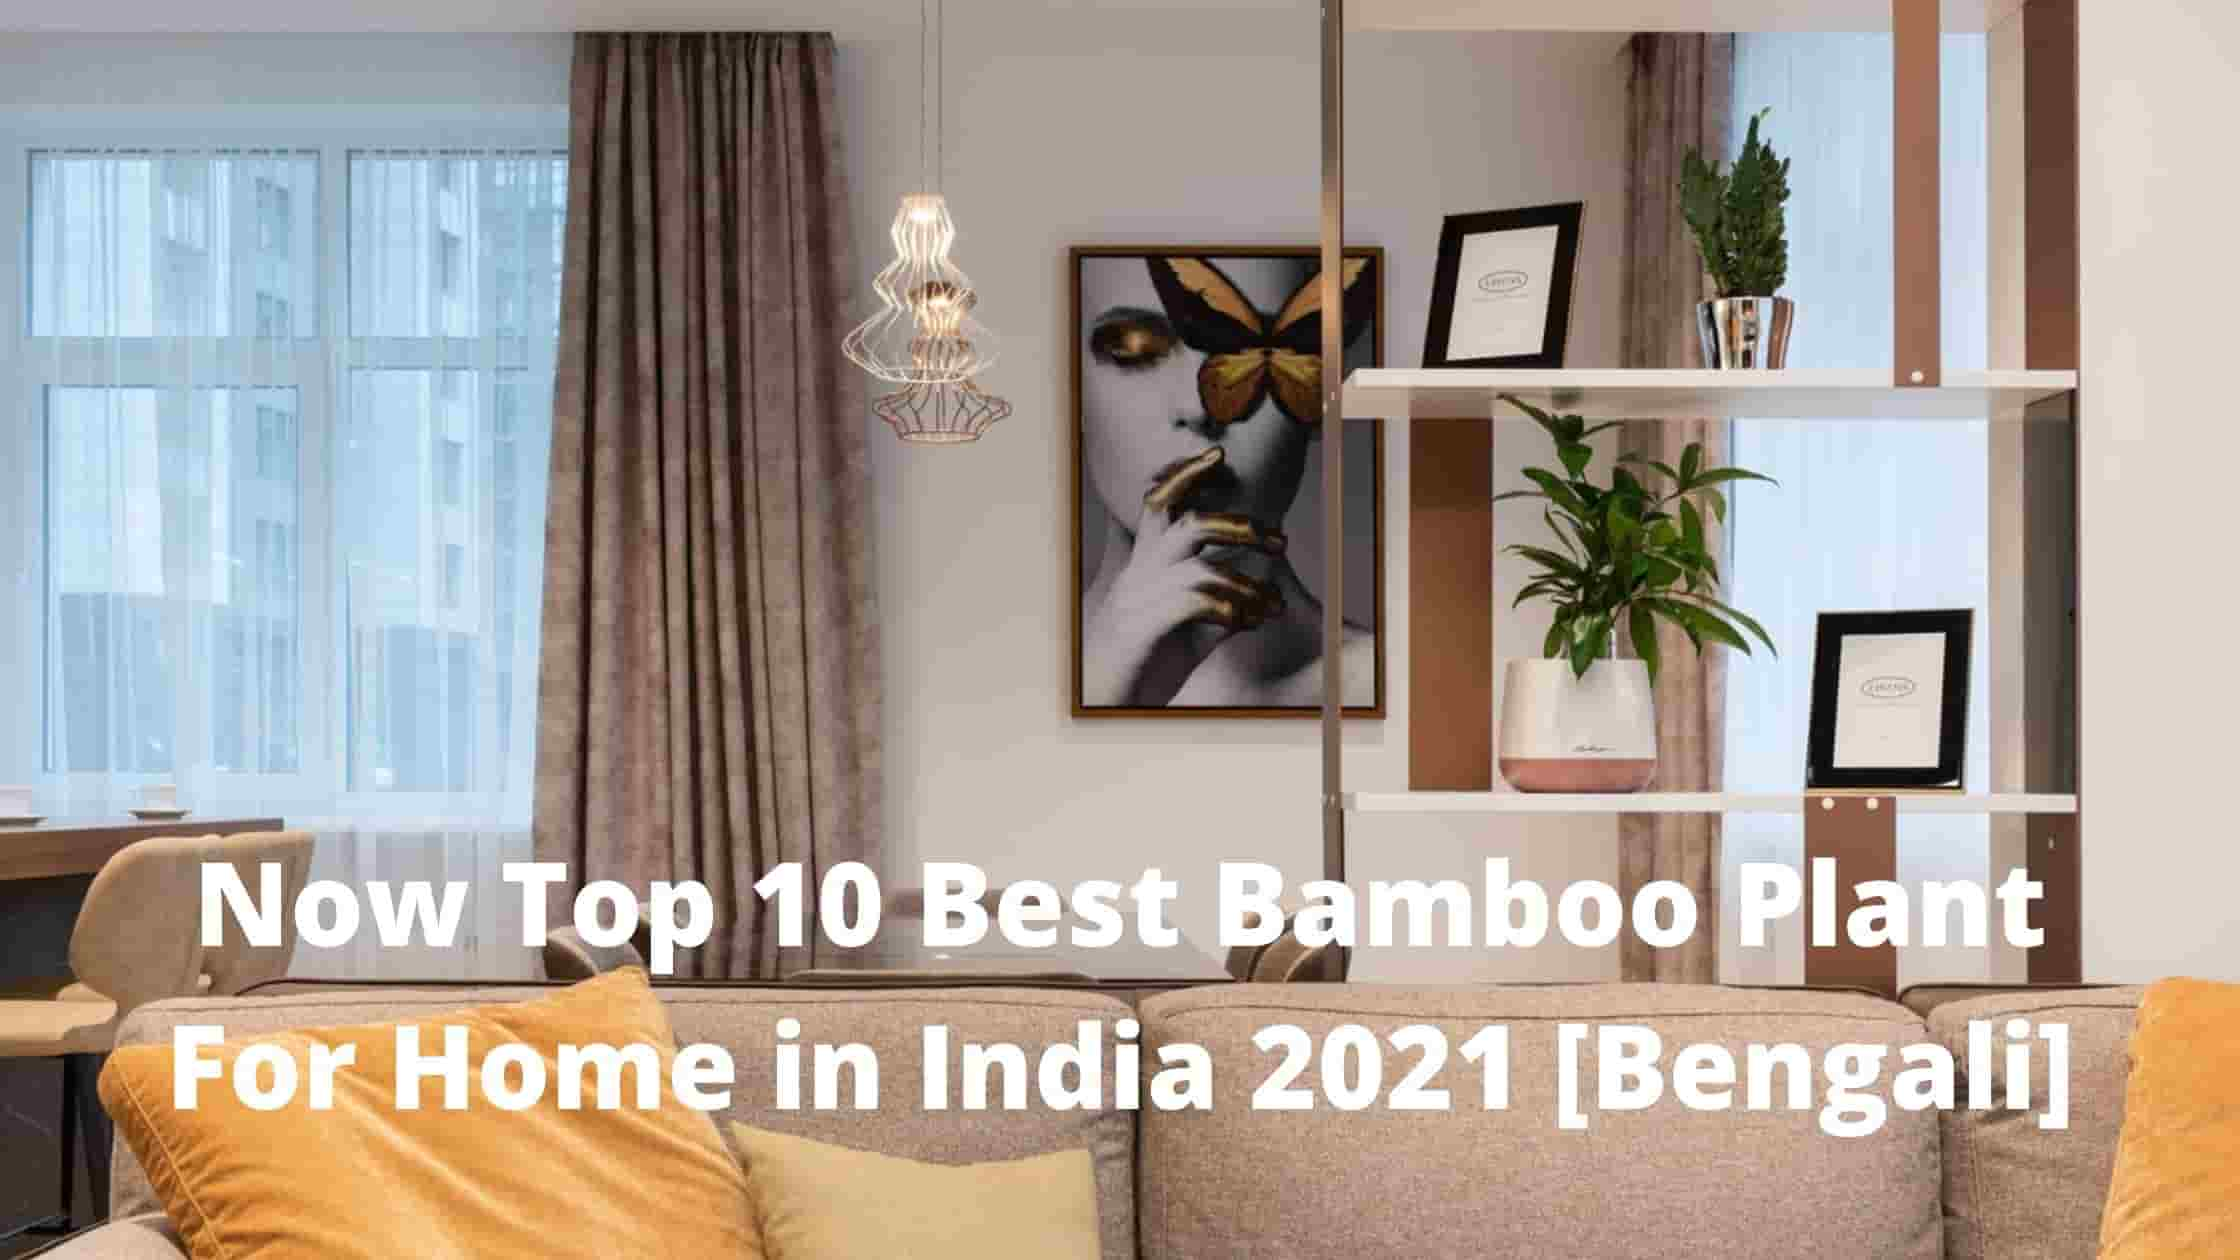 Now Top 10 Best Bamboo Plant For Home in India 2021 [Bengali]